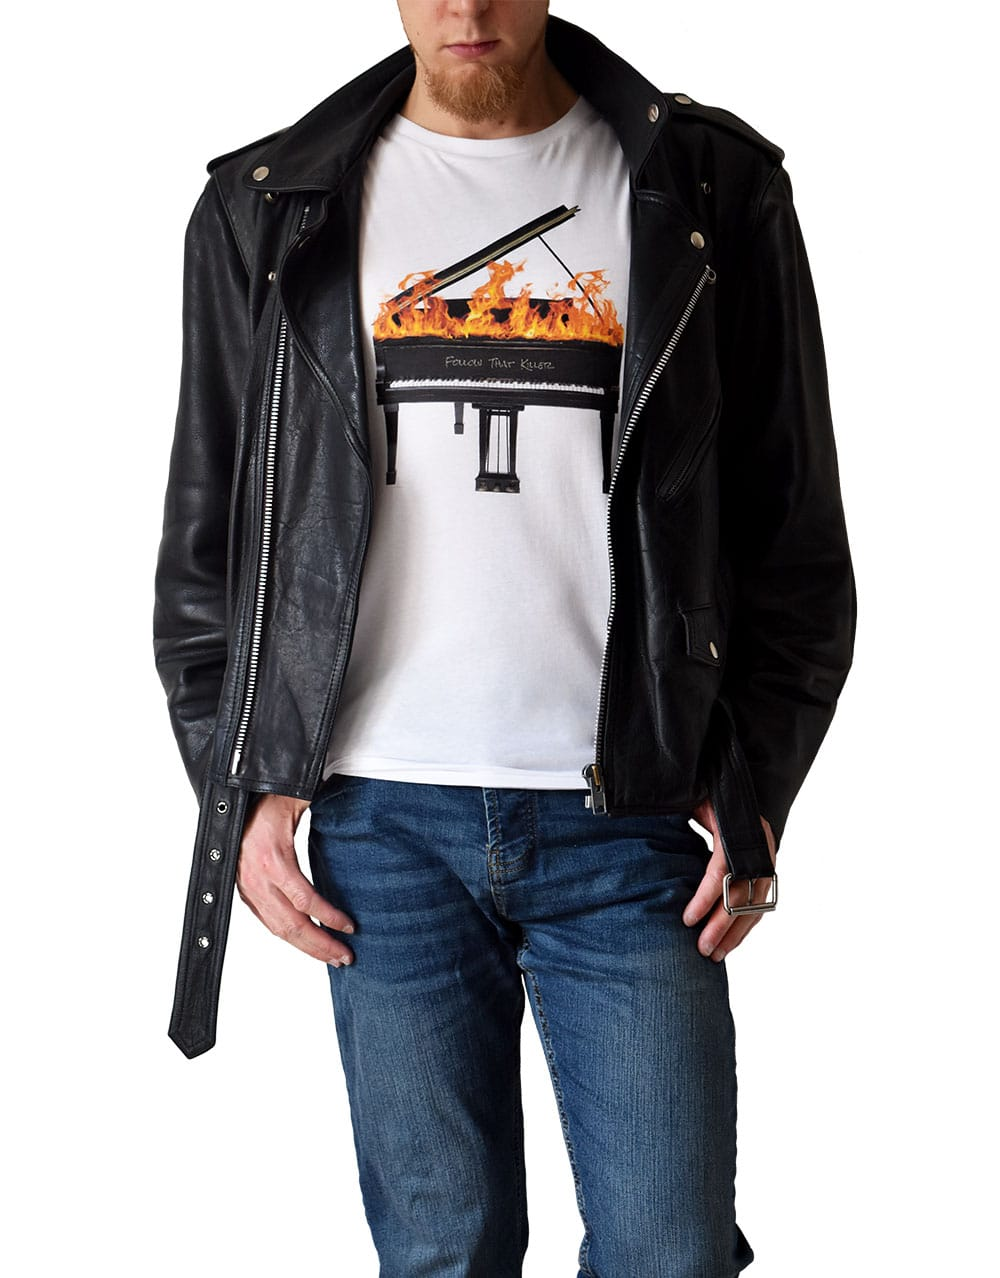 T Shirt Jerry Lee Lewis